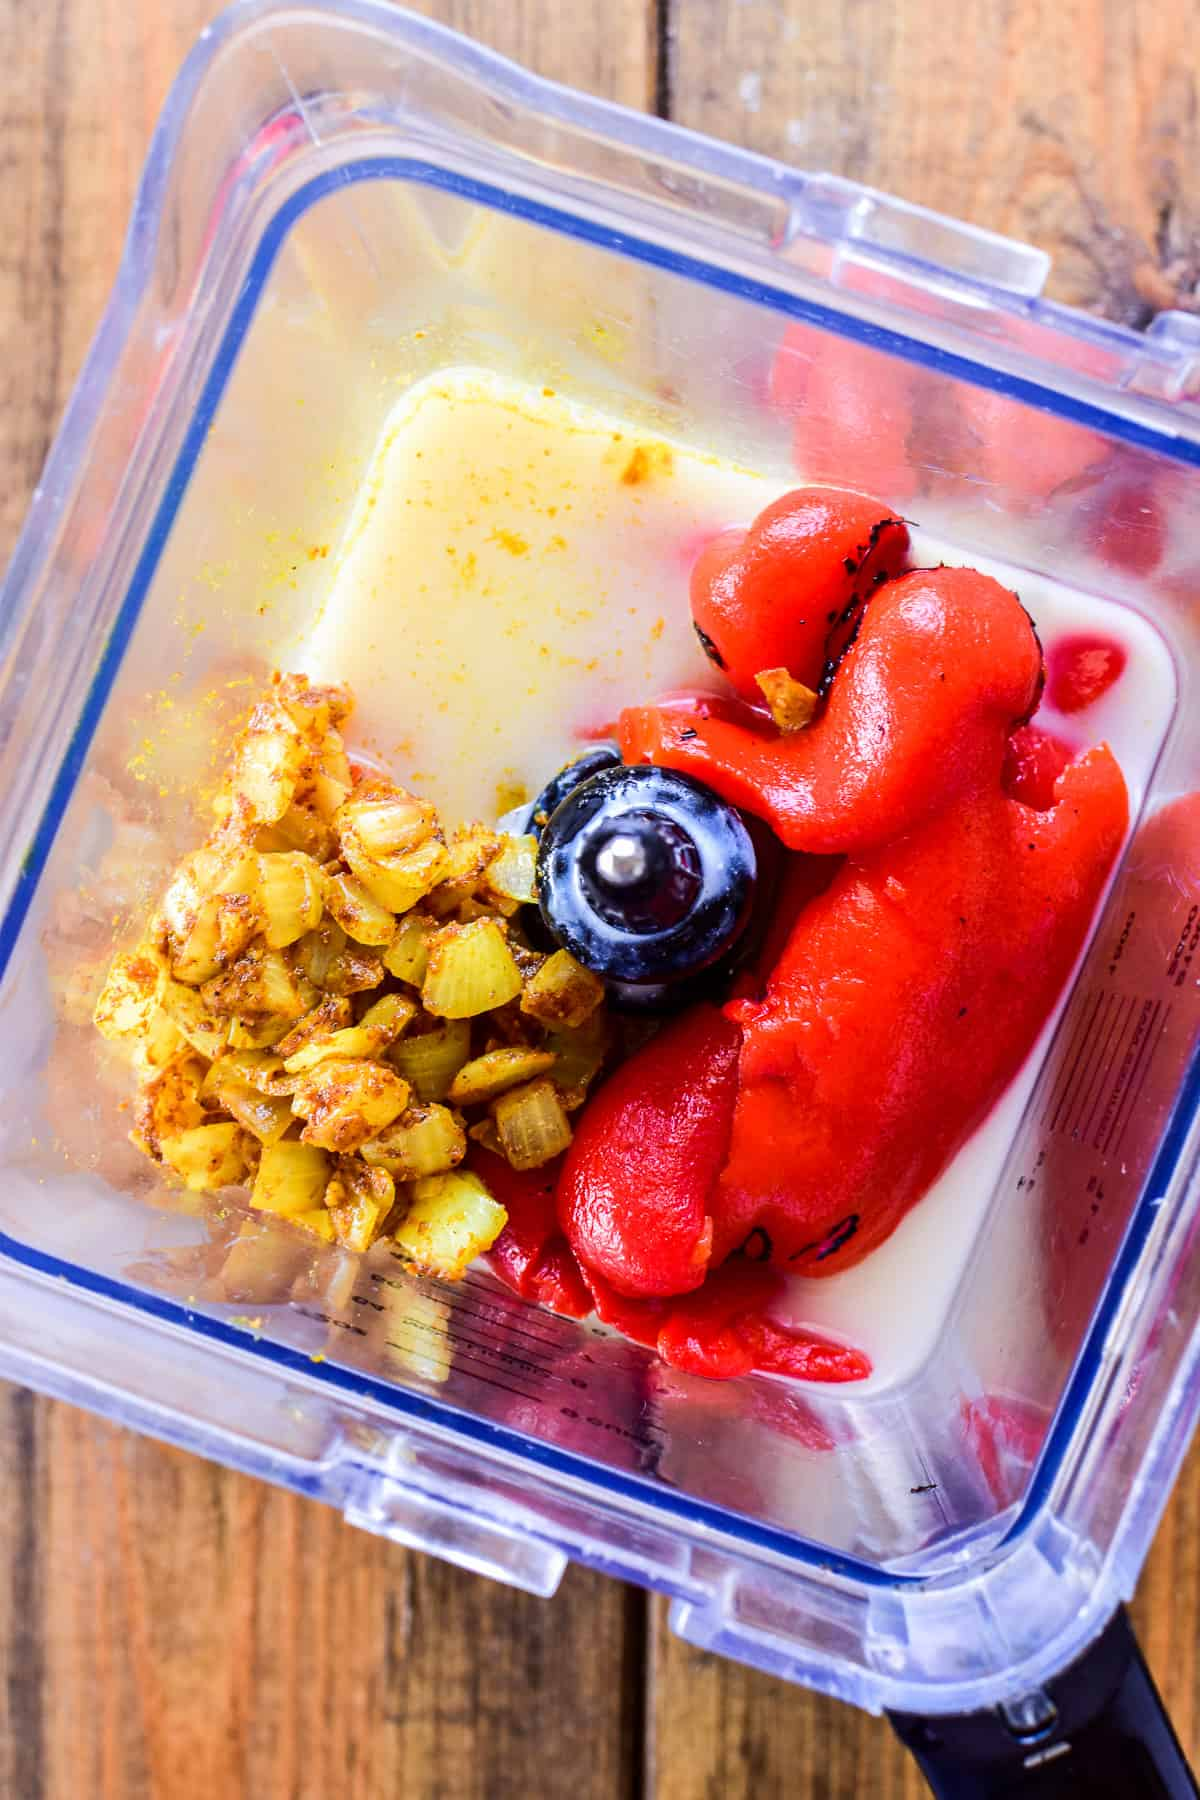 Roasted Red Pepper Soup ingredients in a blender